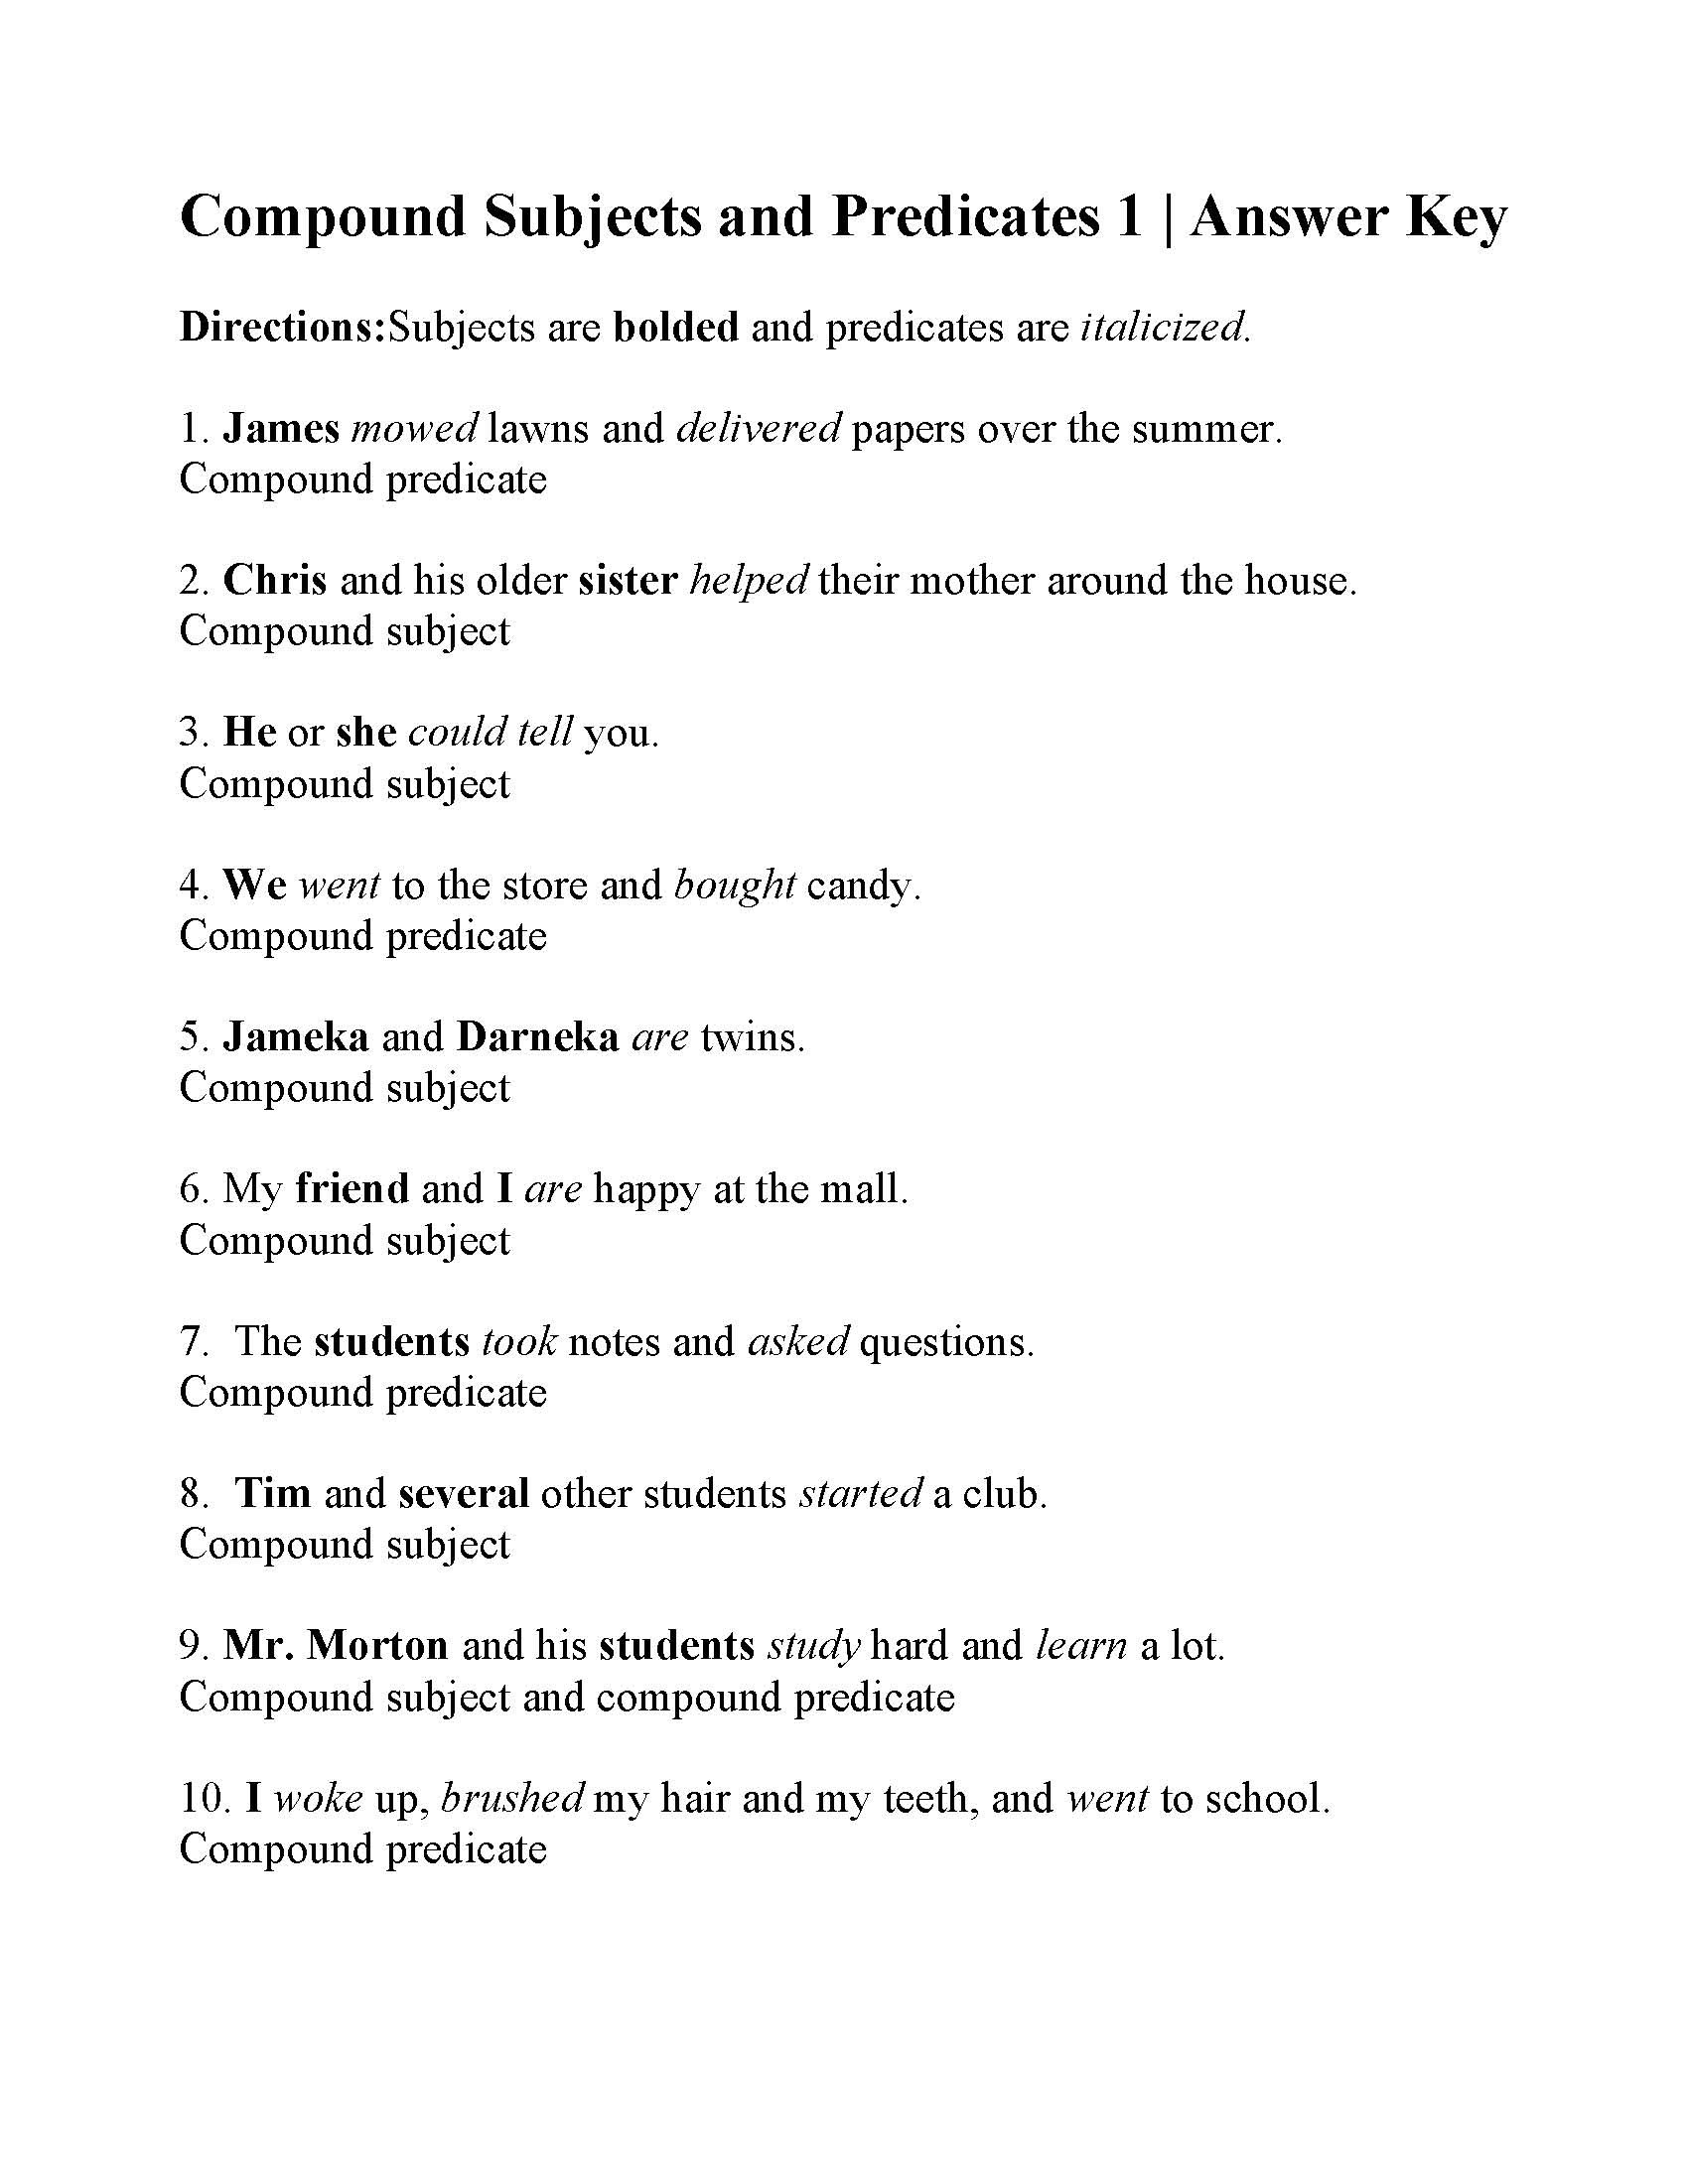 Simple and Compound Interest Worksheet Pound Subjects and Predicates Worksheet Answers Hard to